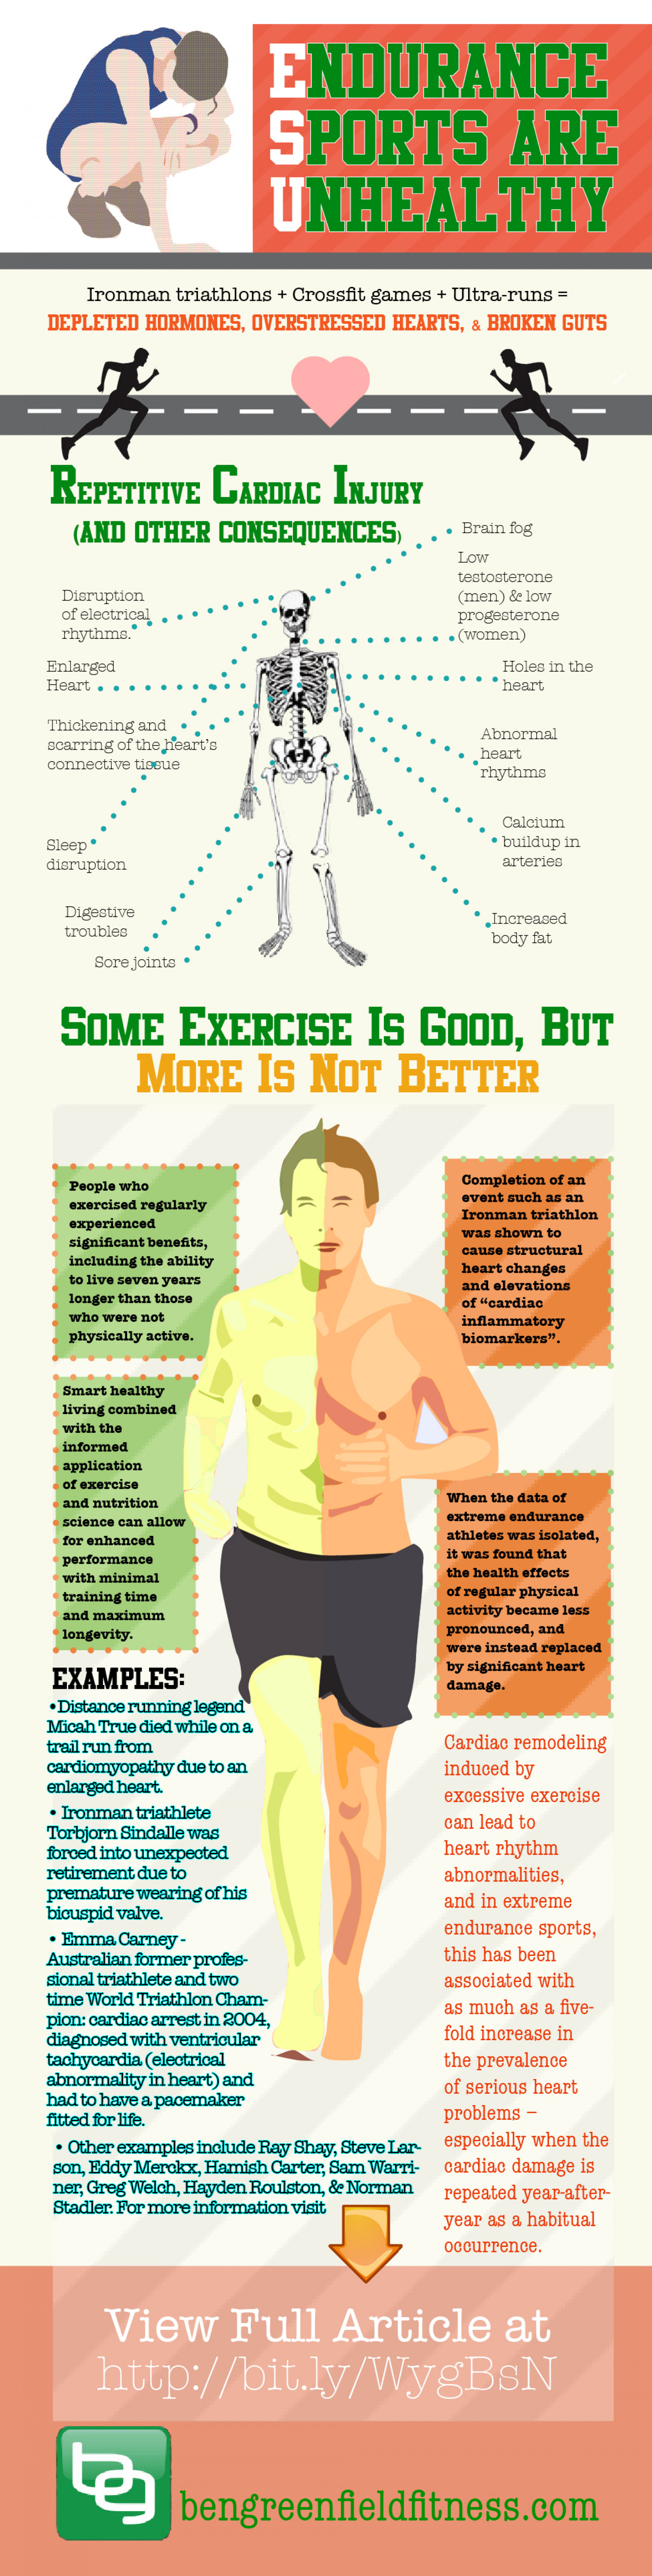 Endurance Sports Are Unhealthy Infographic